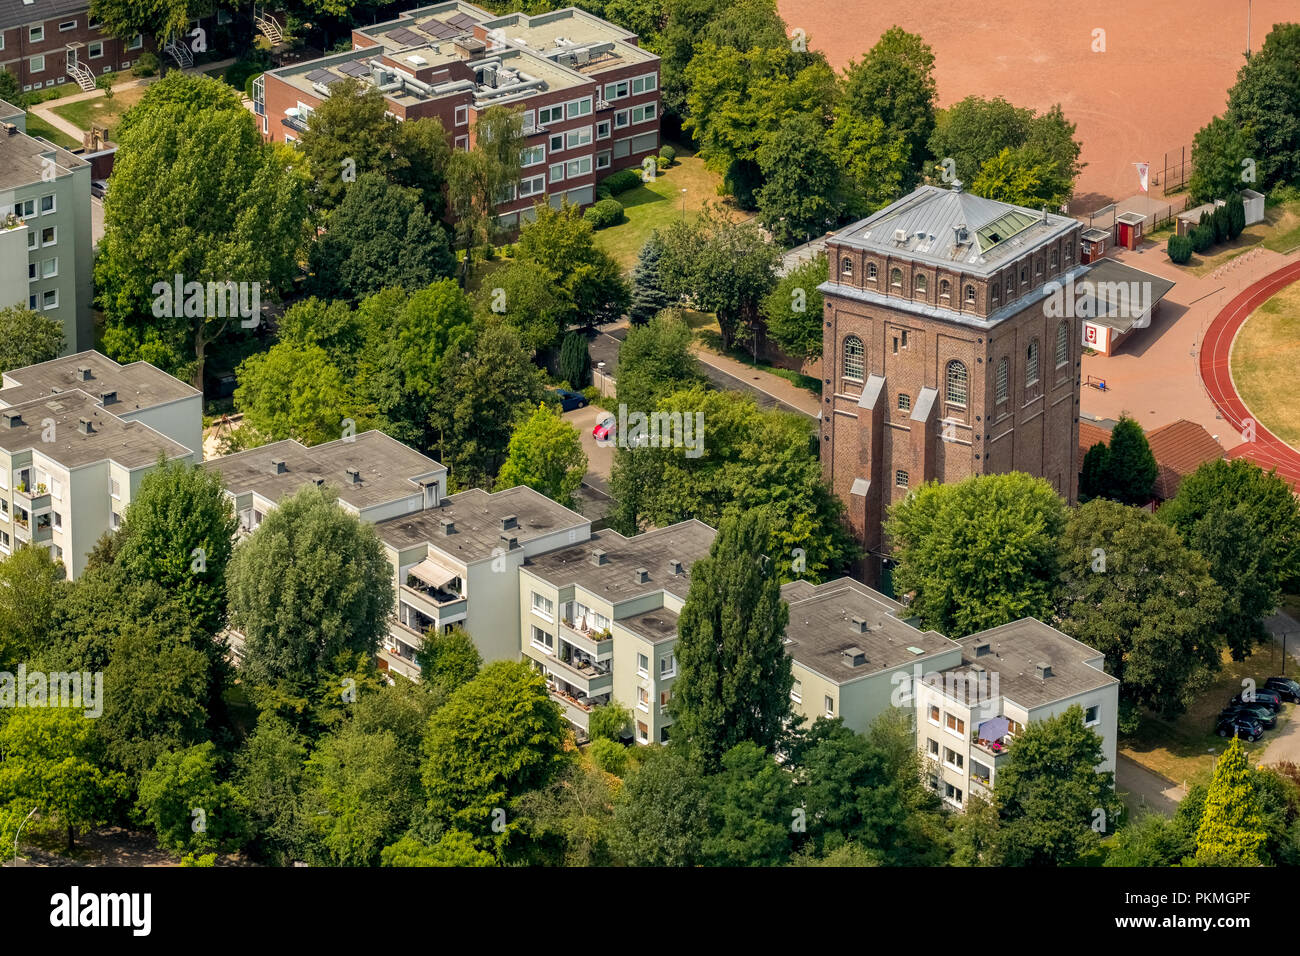 Aerial view, Former colliery Julius Philipp in Bochum with Malakowturm, Institute of Medical Ethics and History of Medicine of - Stock Image